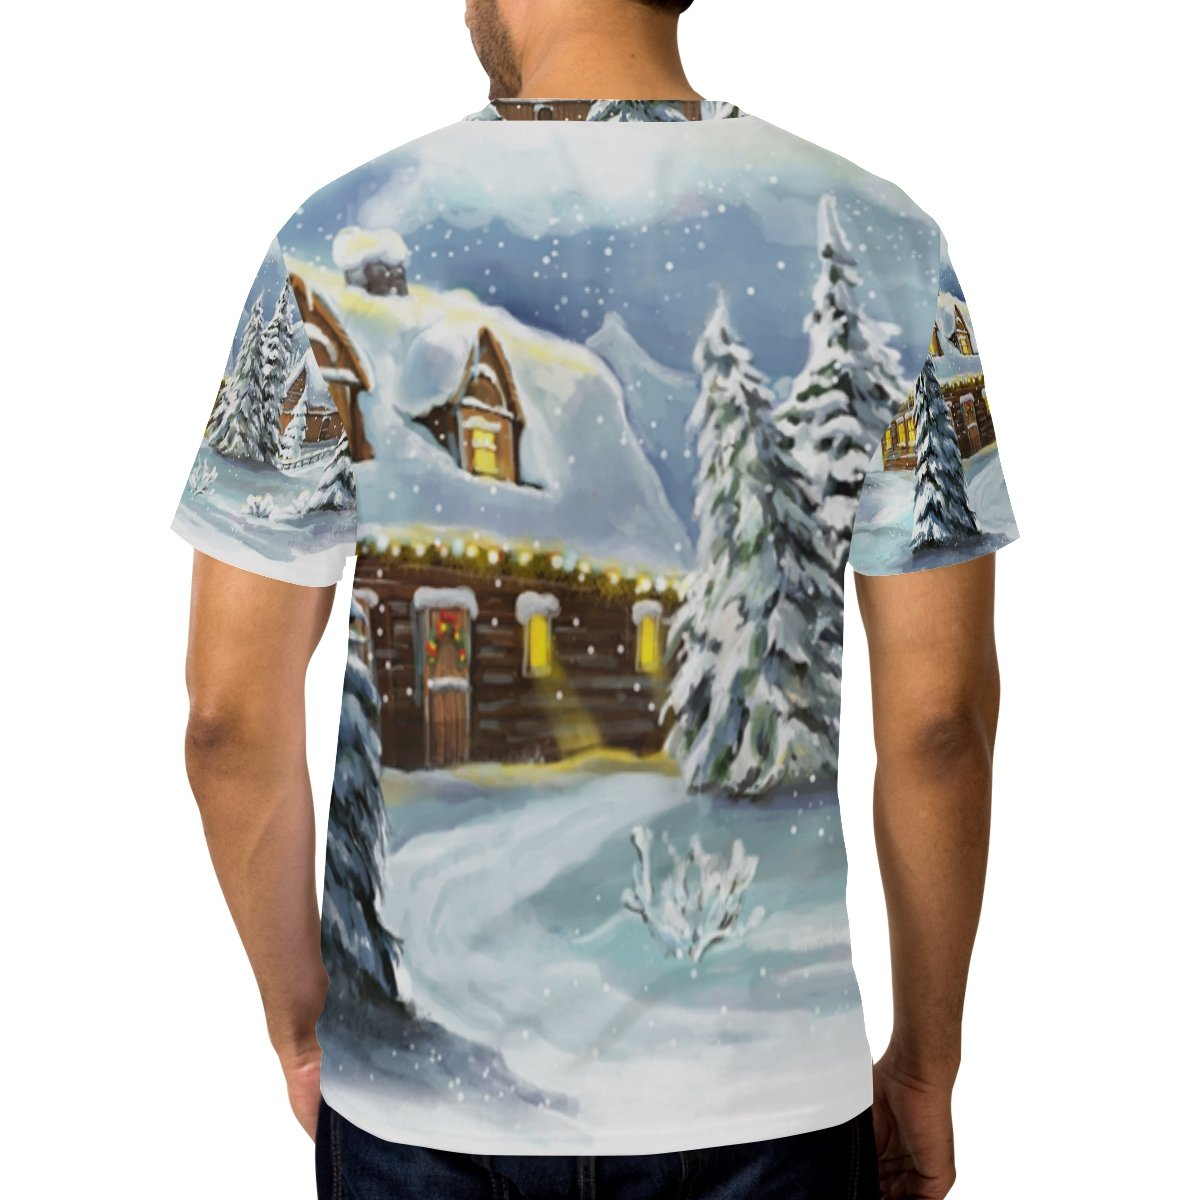 6b693cb24 Amazon.com: LORVIES Men's Christmas Fairy Tale Village Short Sleeve ...